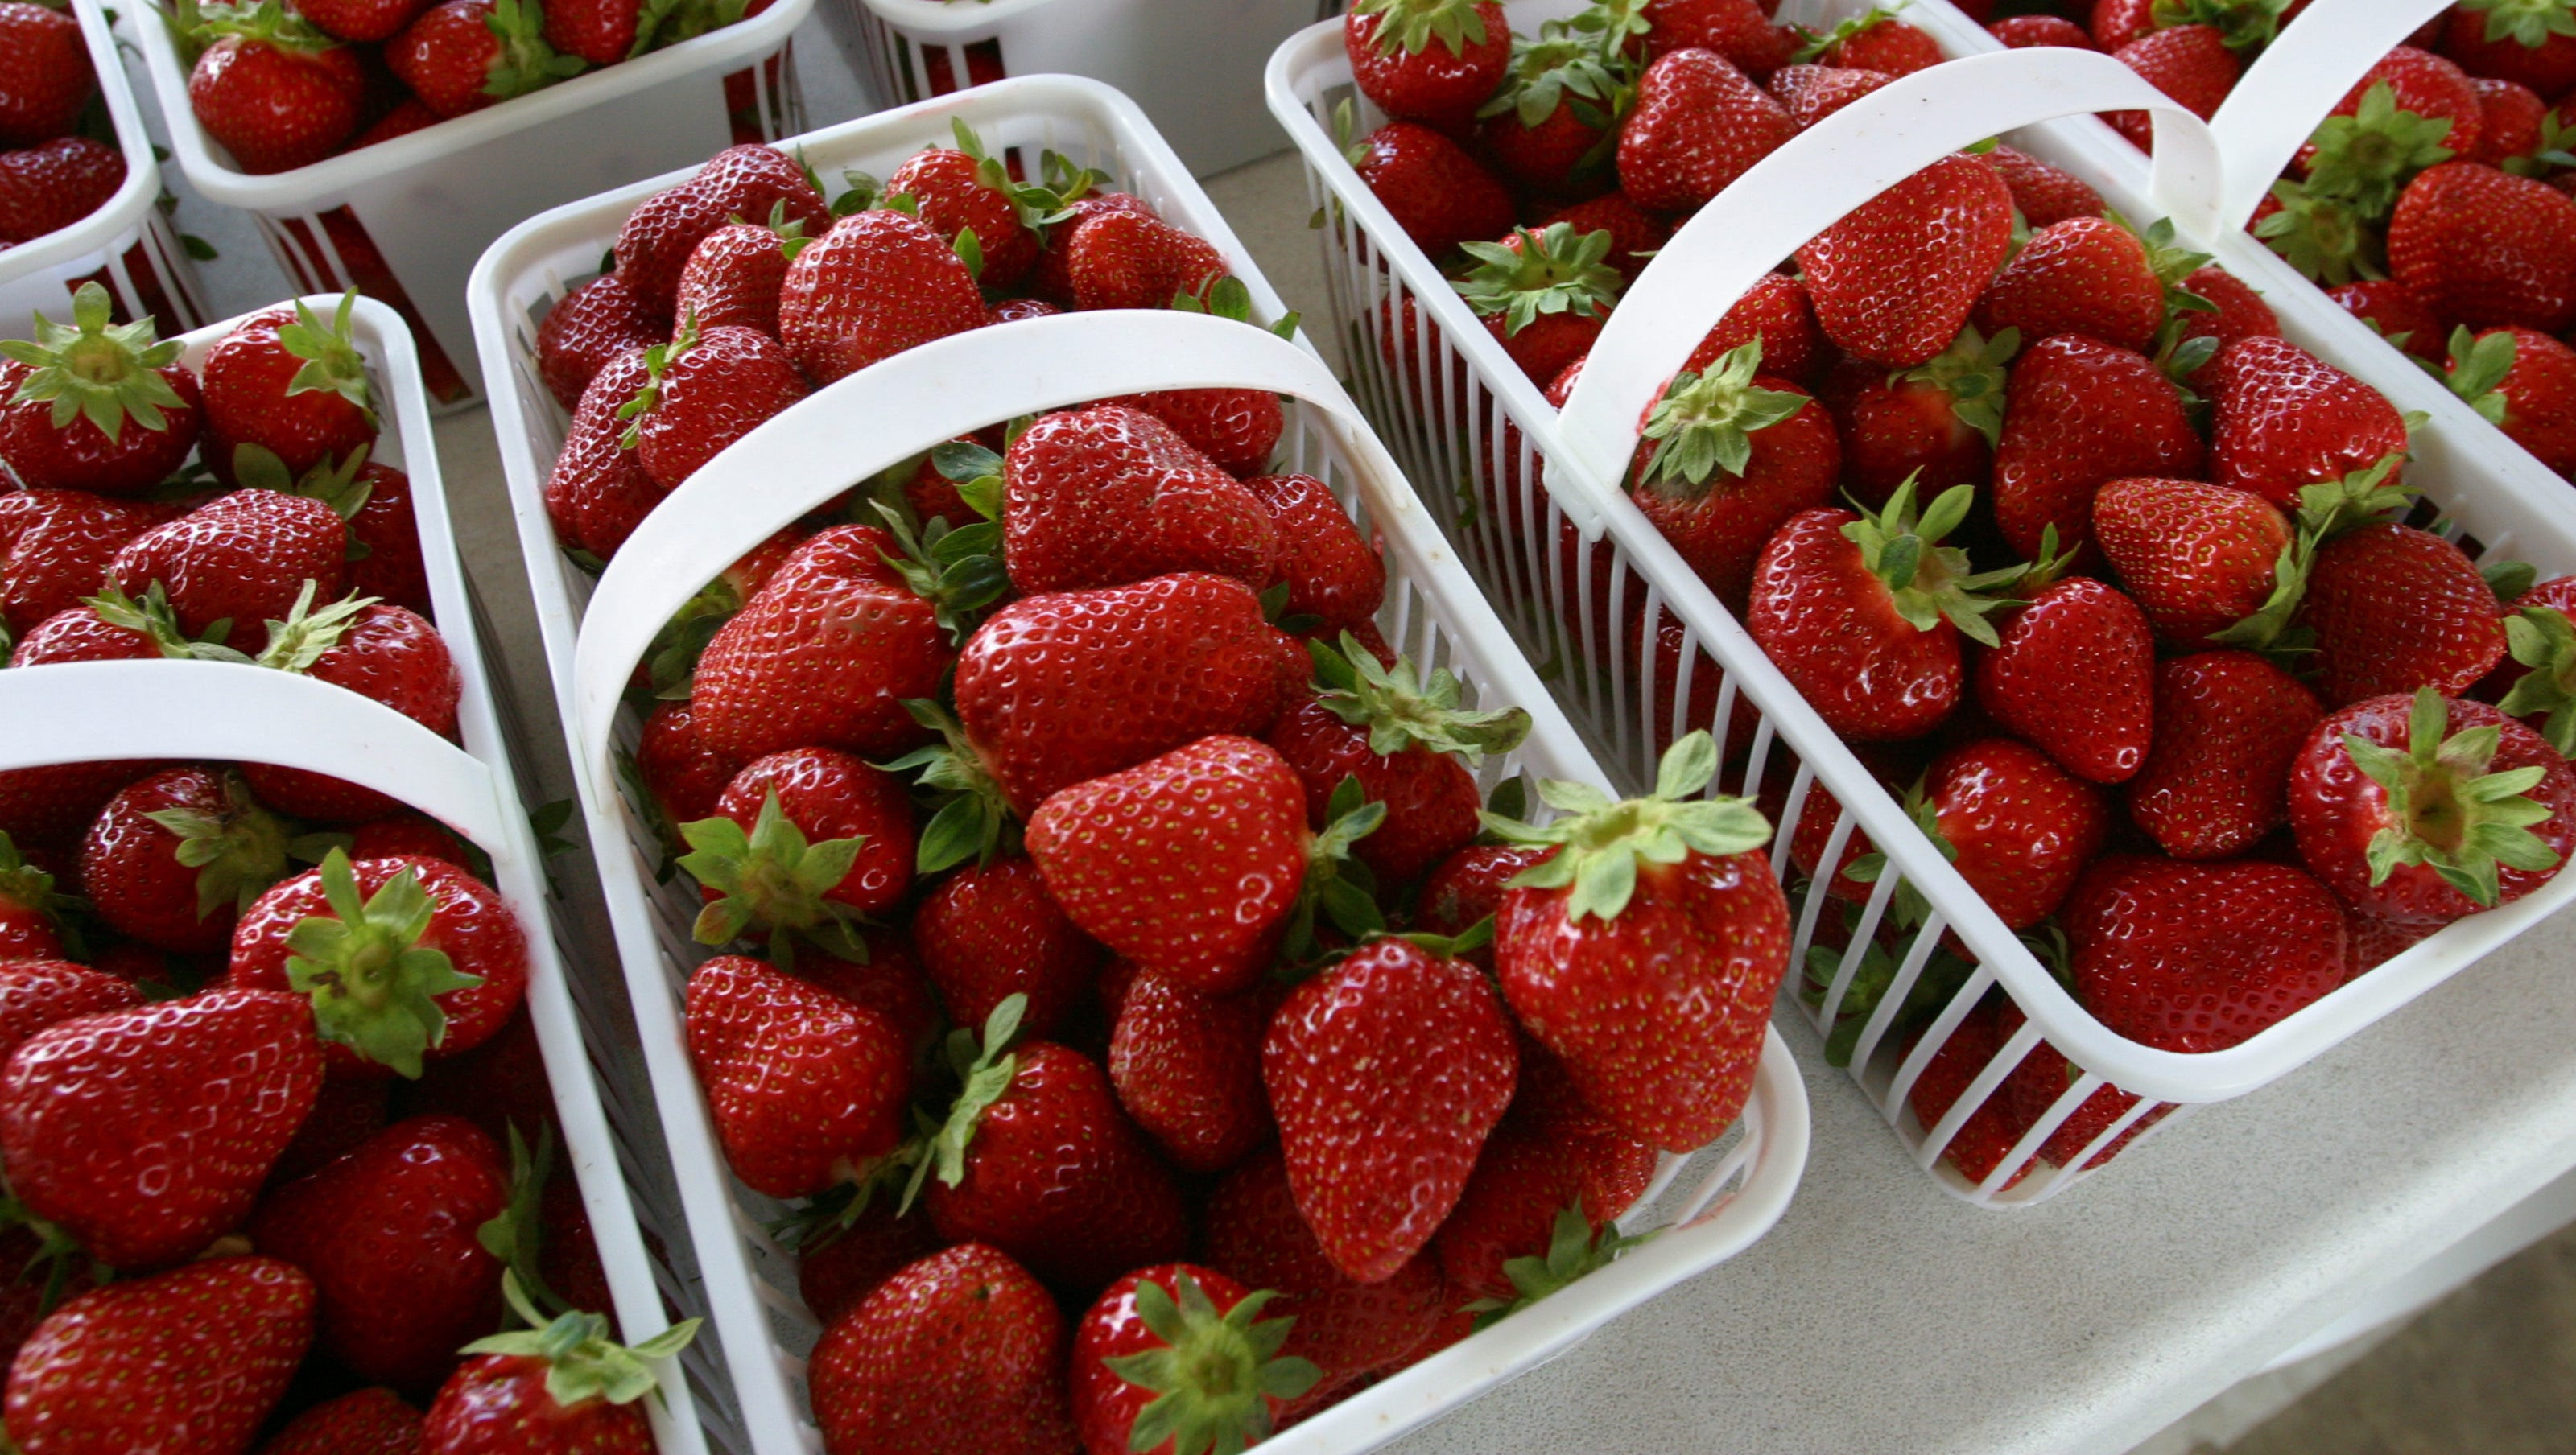 Strawberries, spinach top 'Dirty Dozen' list of food with most pesticides